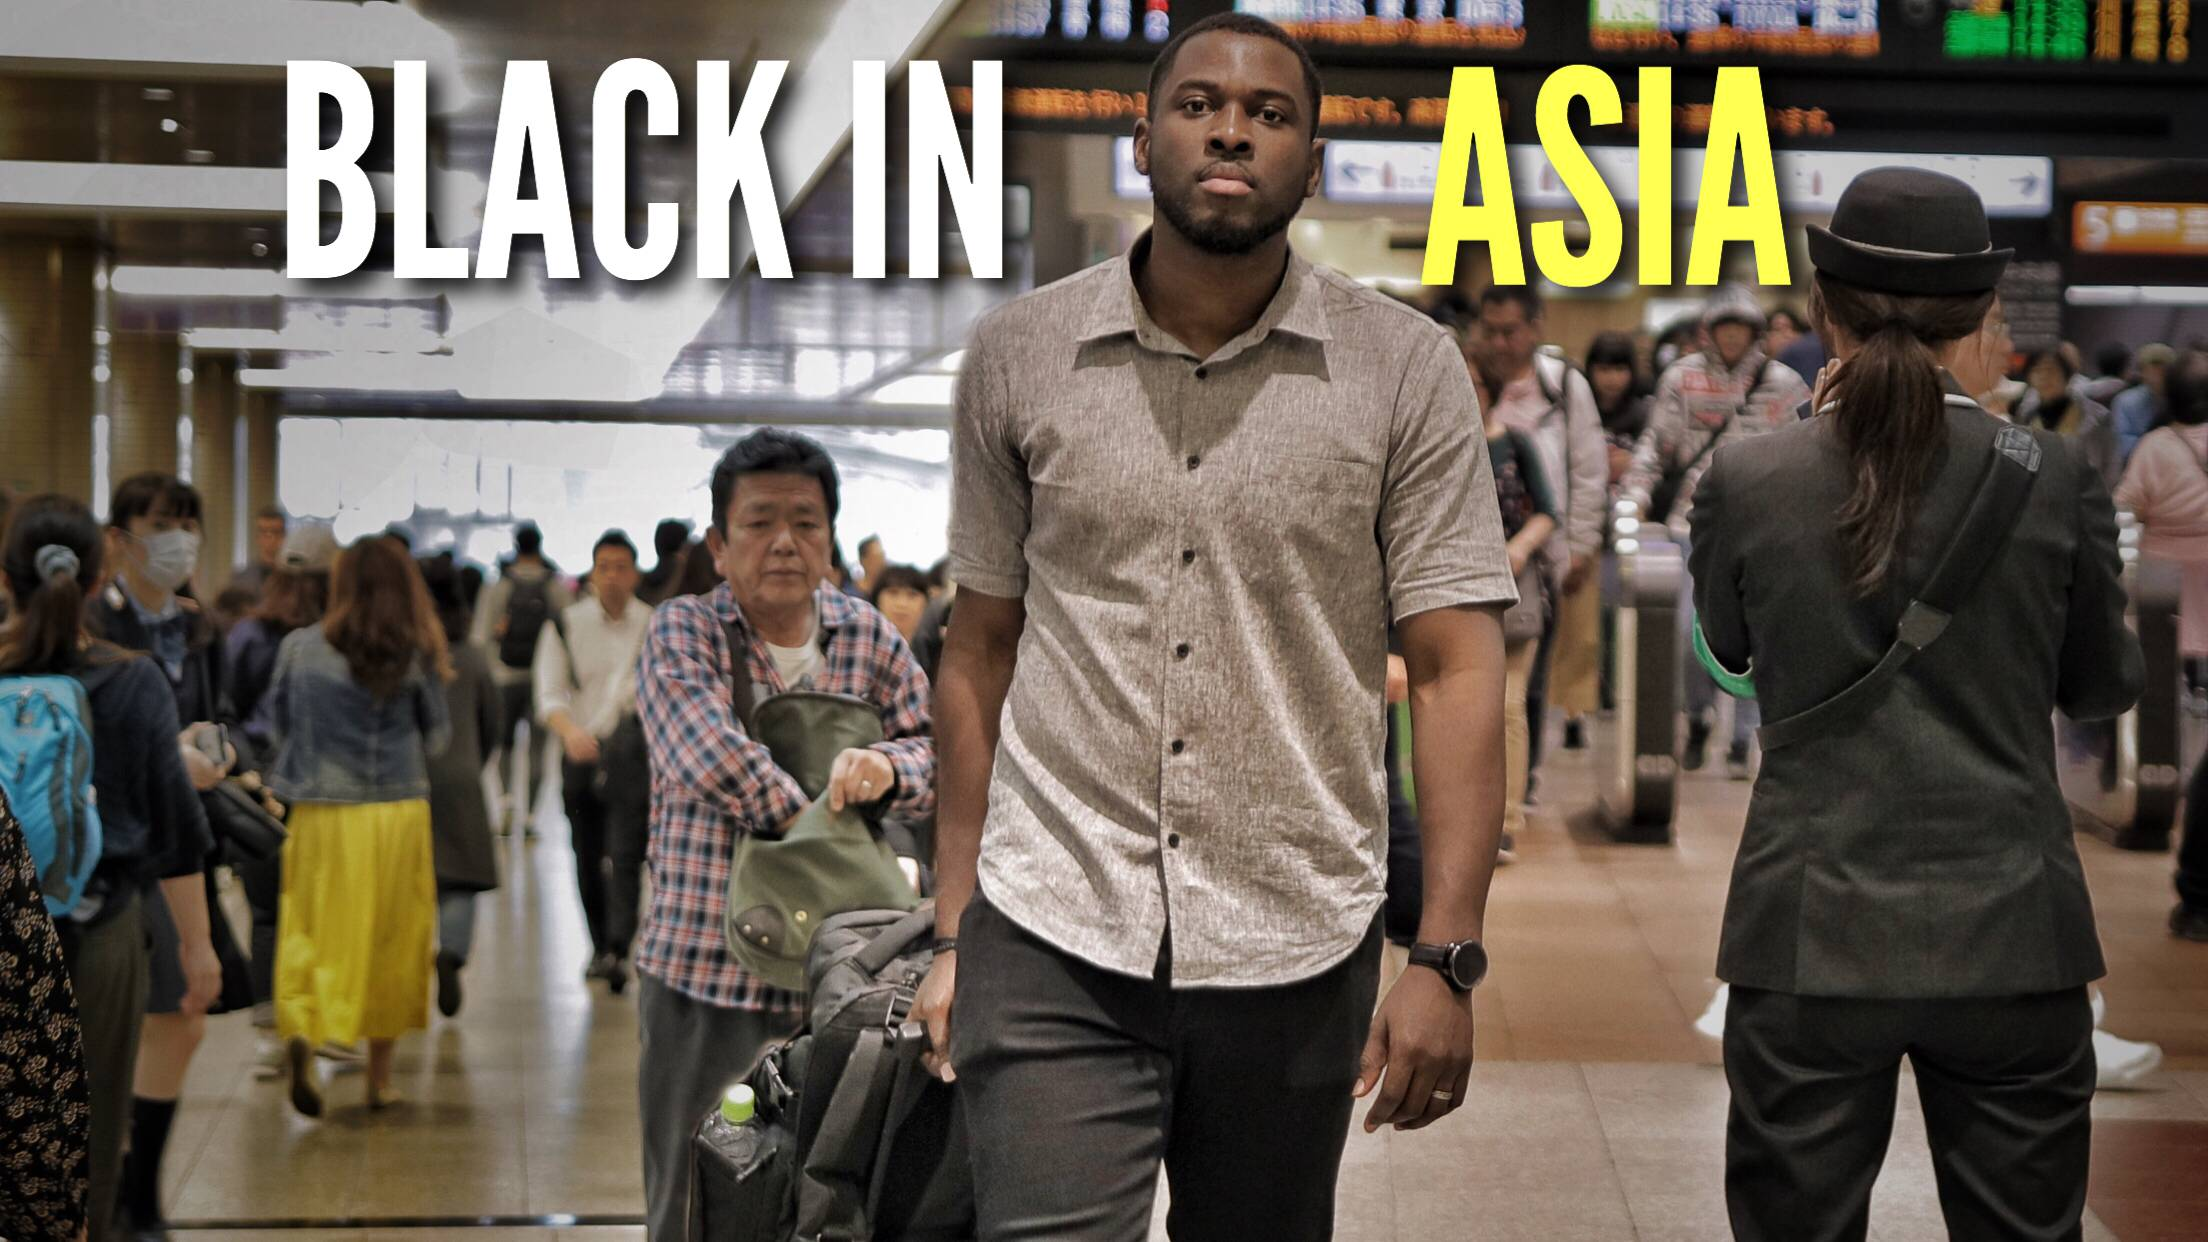 True tales: Videos on the YouTube channel The Black Experience Japan (pictured above) offer a journalistic approach to explore what it is like to live in Asia as a black person. |